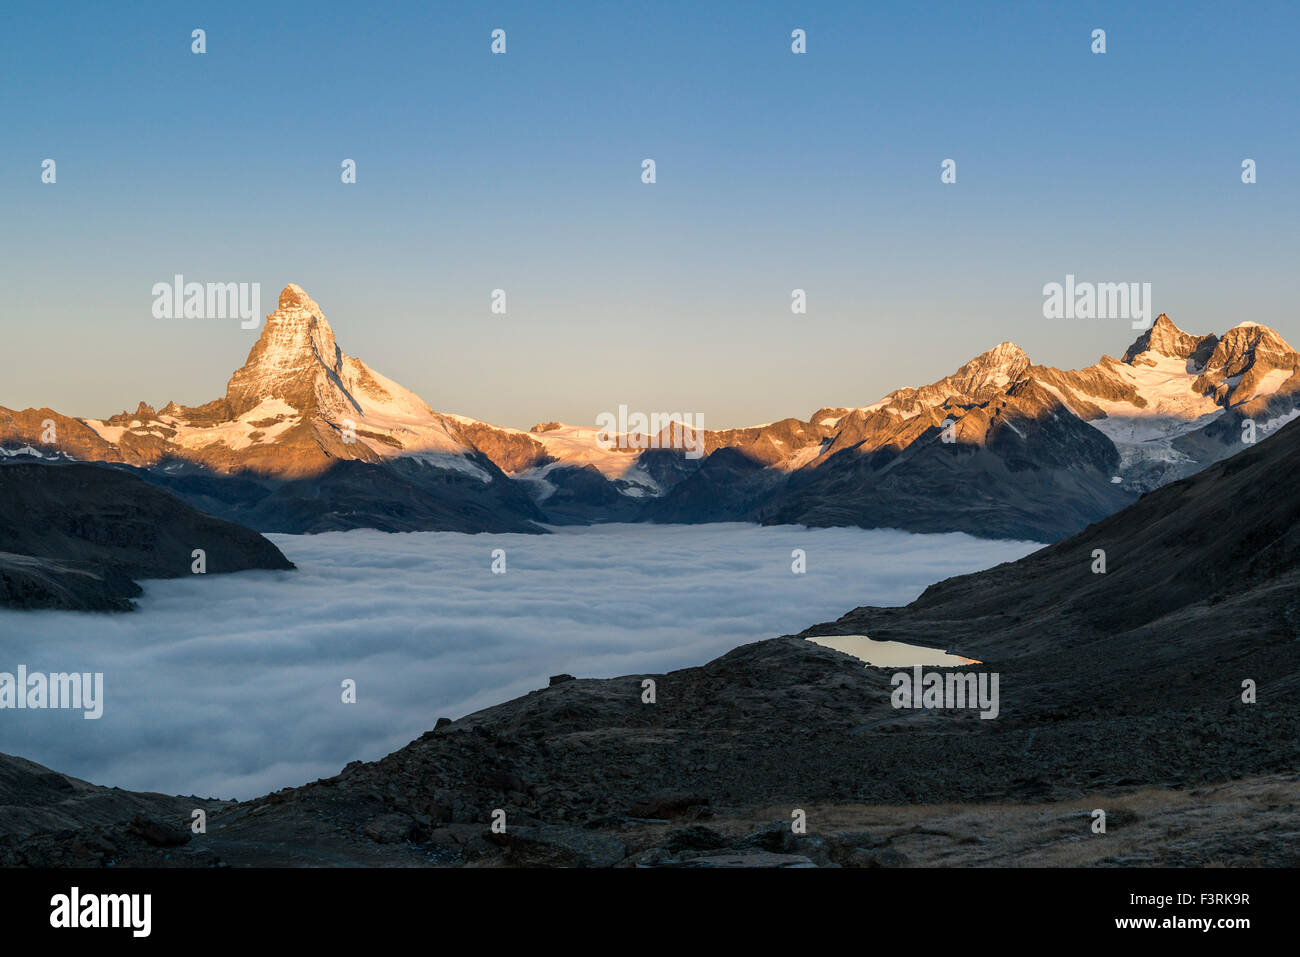 Matterhorn with clouds at sunrise, Switzerland Stock Photo